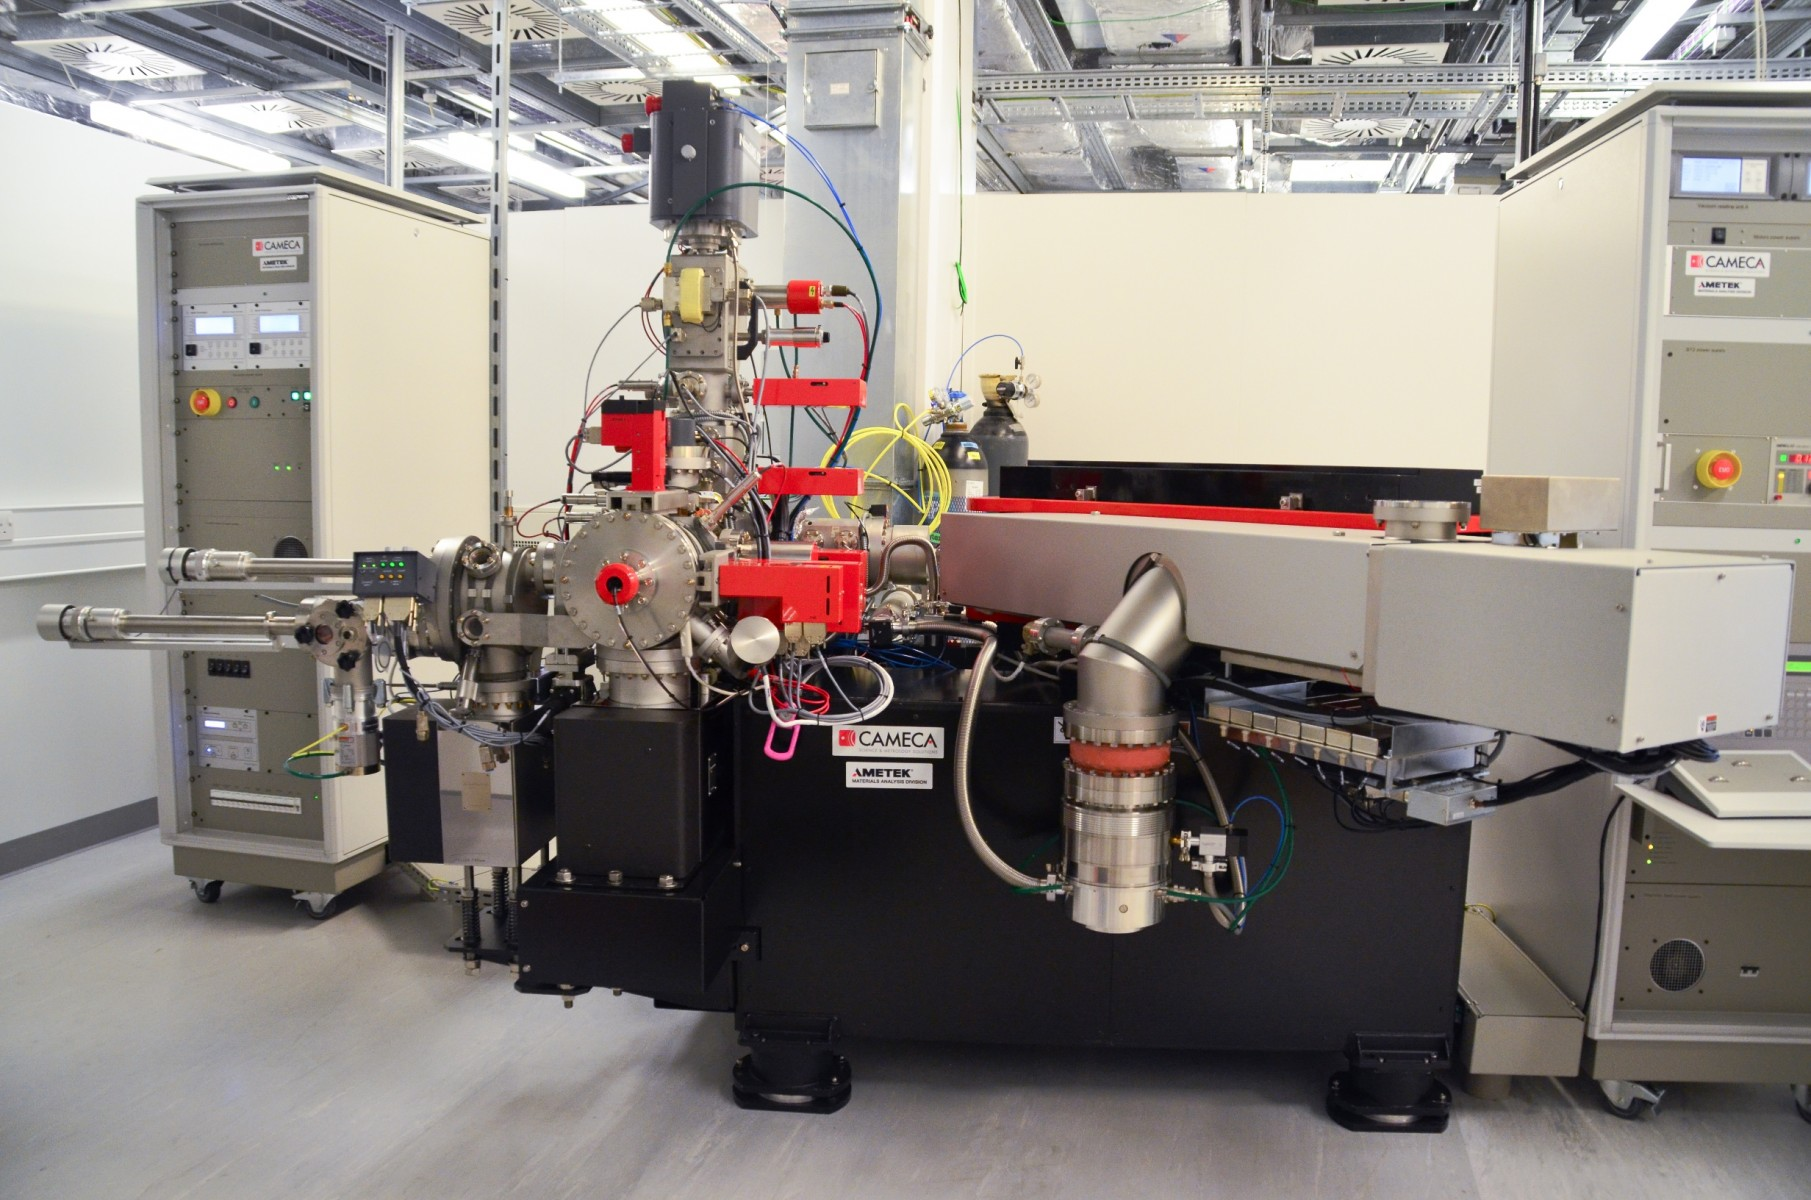 The CAMECA NanoSIMS instrument at The University of Manchester